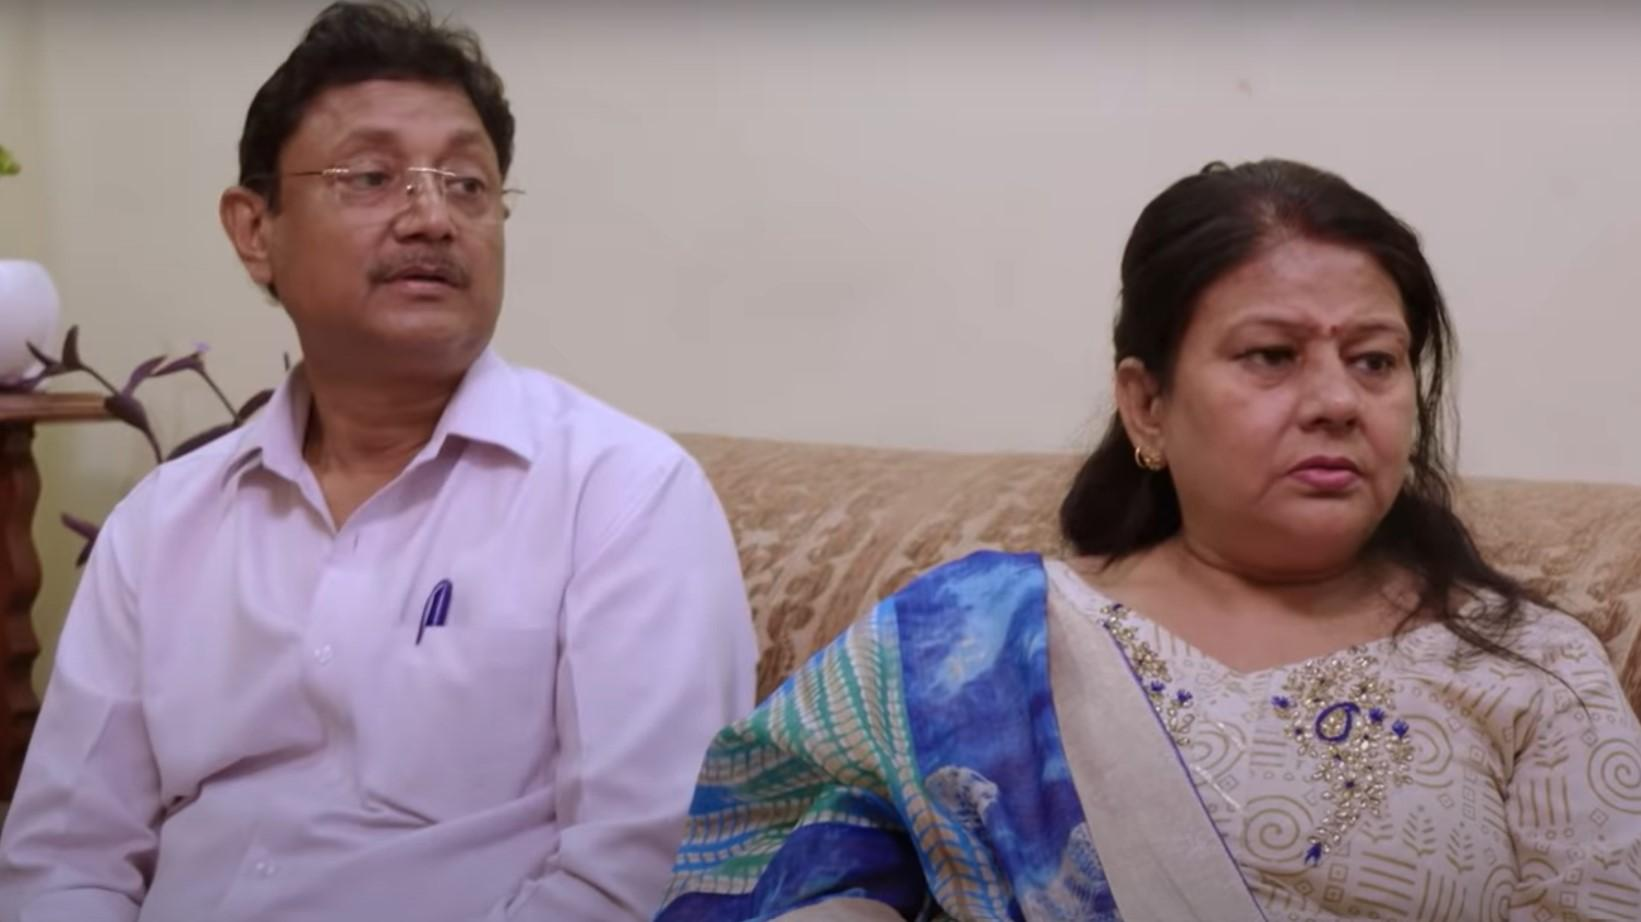 Les parents de Sumit sur '90 Day Fiancé '